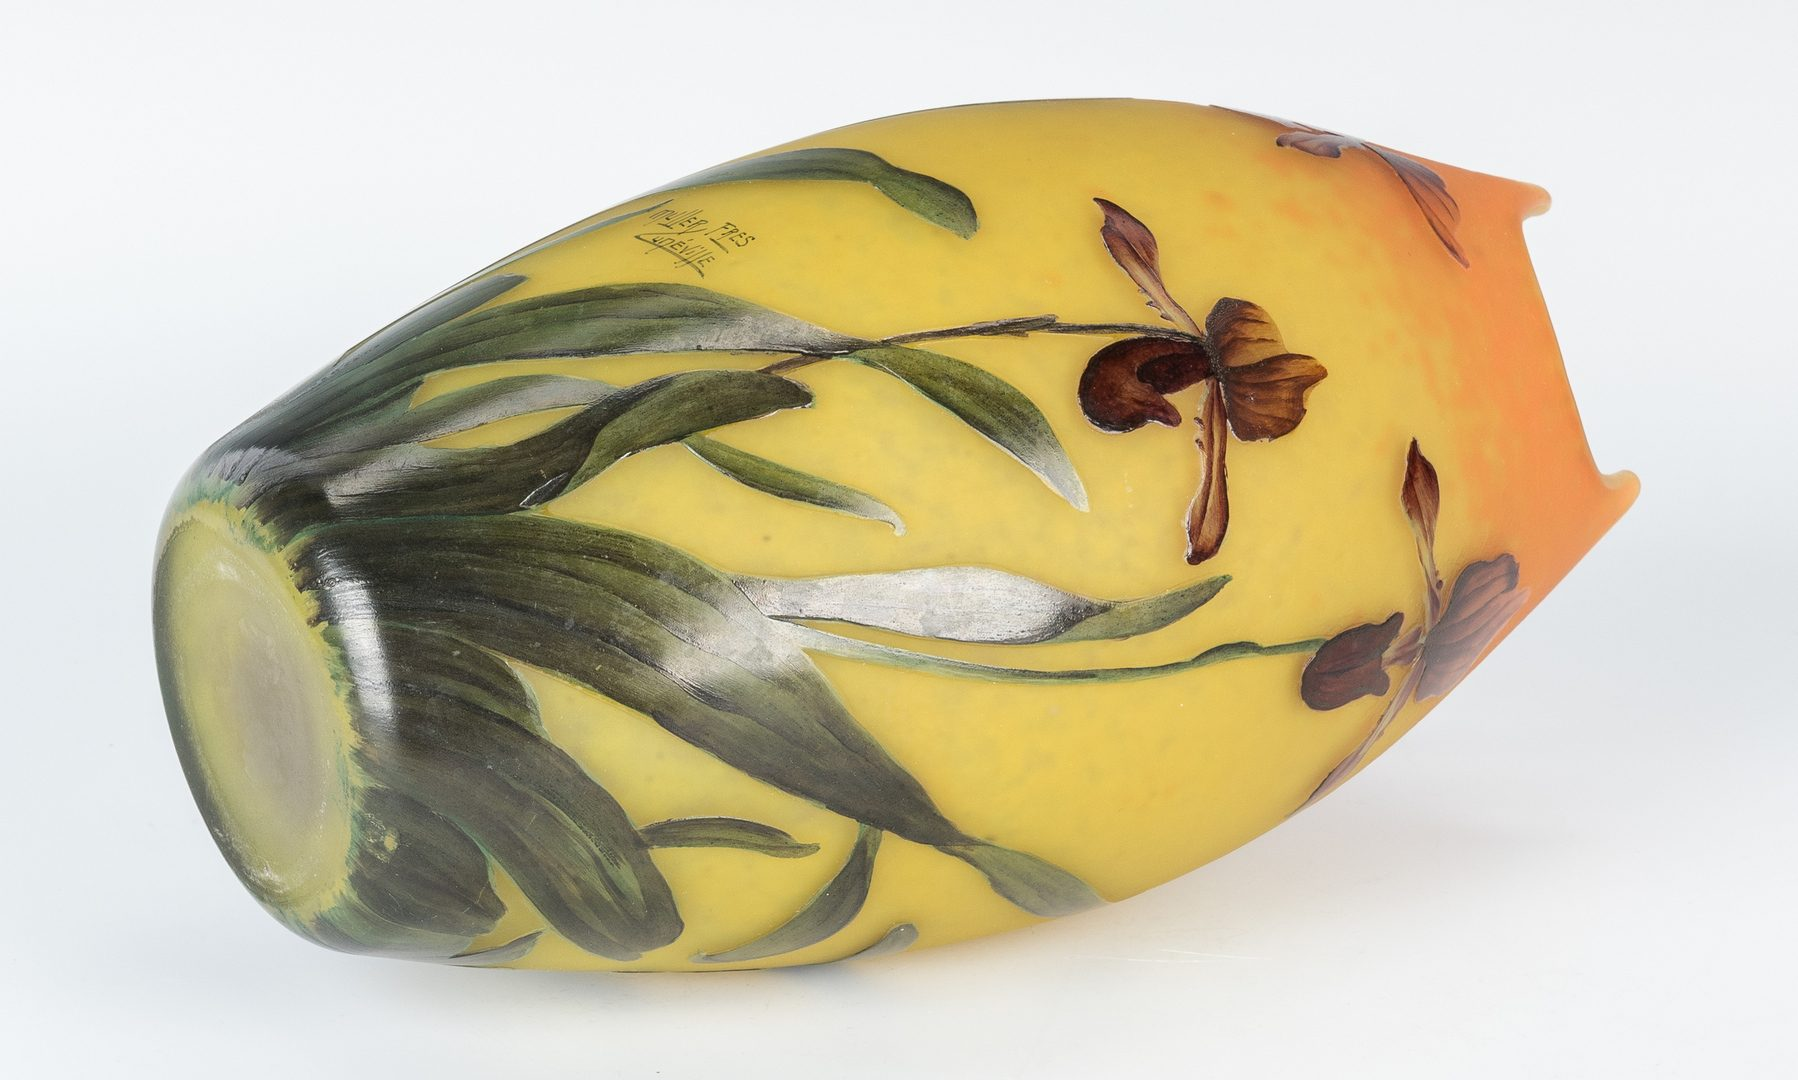 Lot 496: 2 French Cameo Cut Art Glass Vases, incl. Muller Freres, Devez